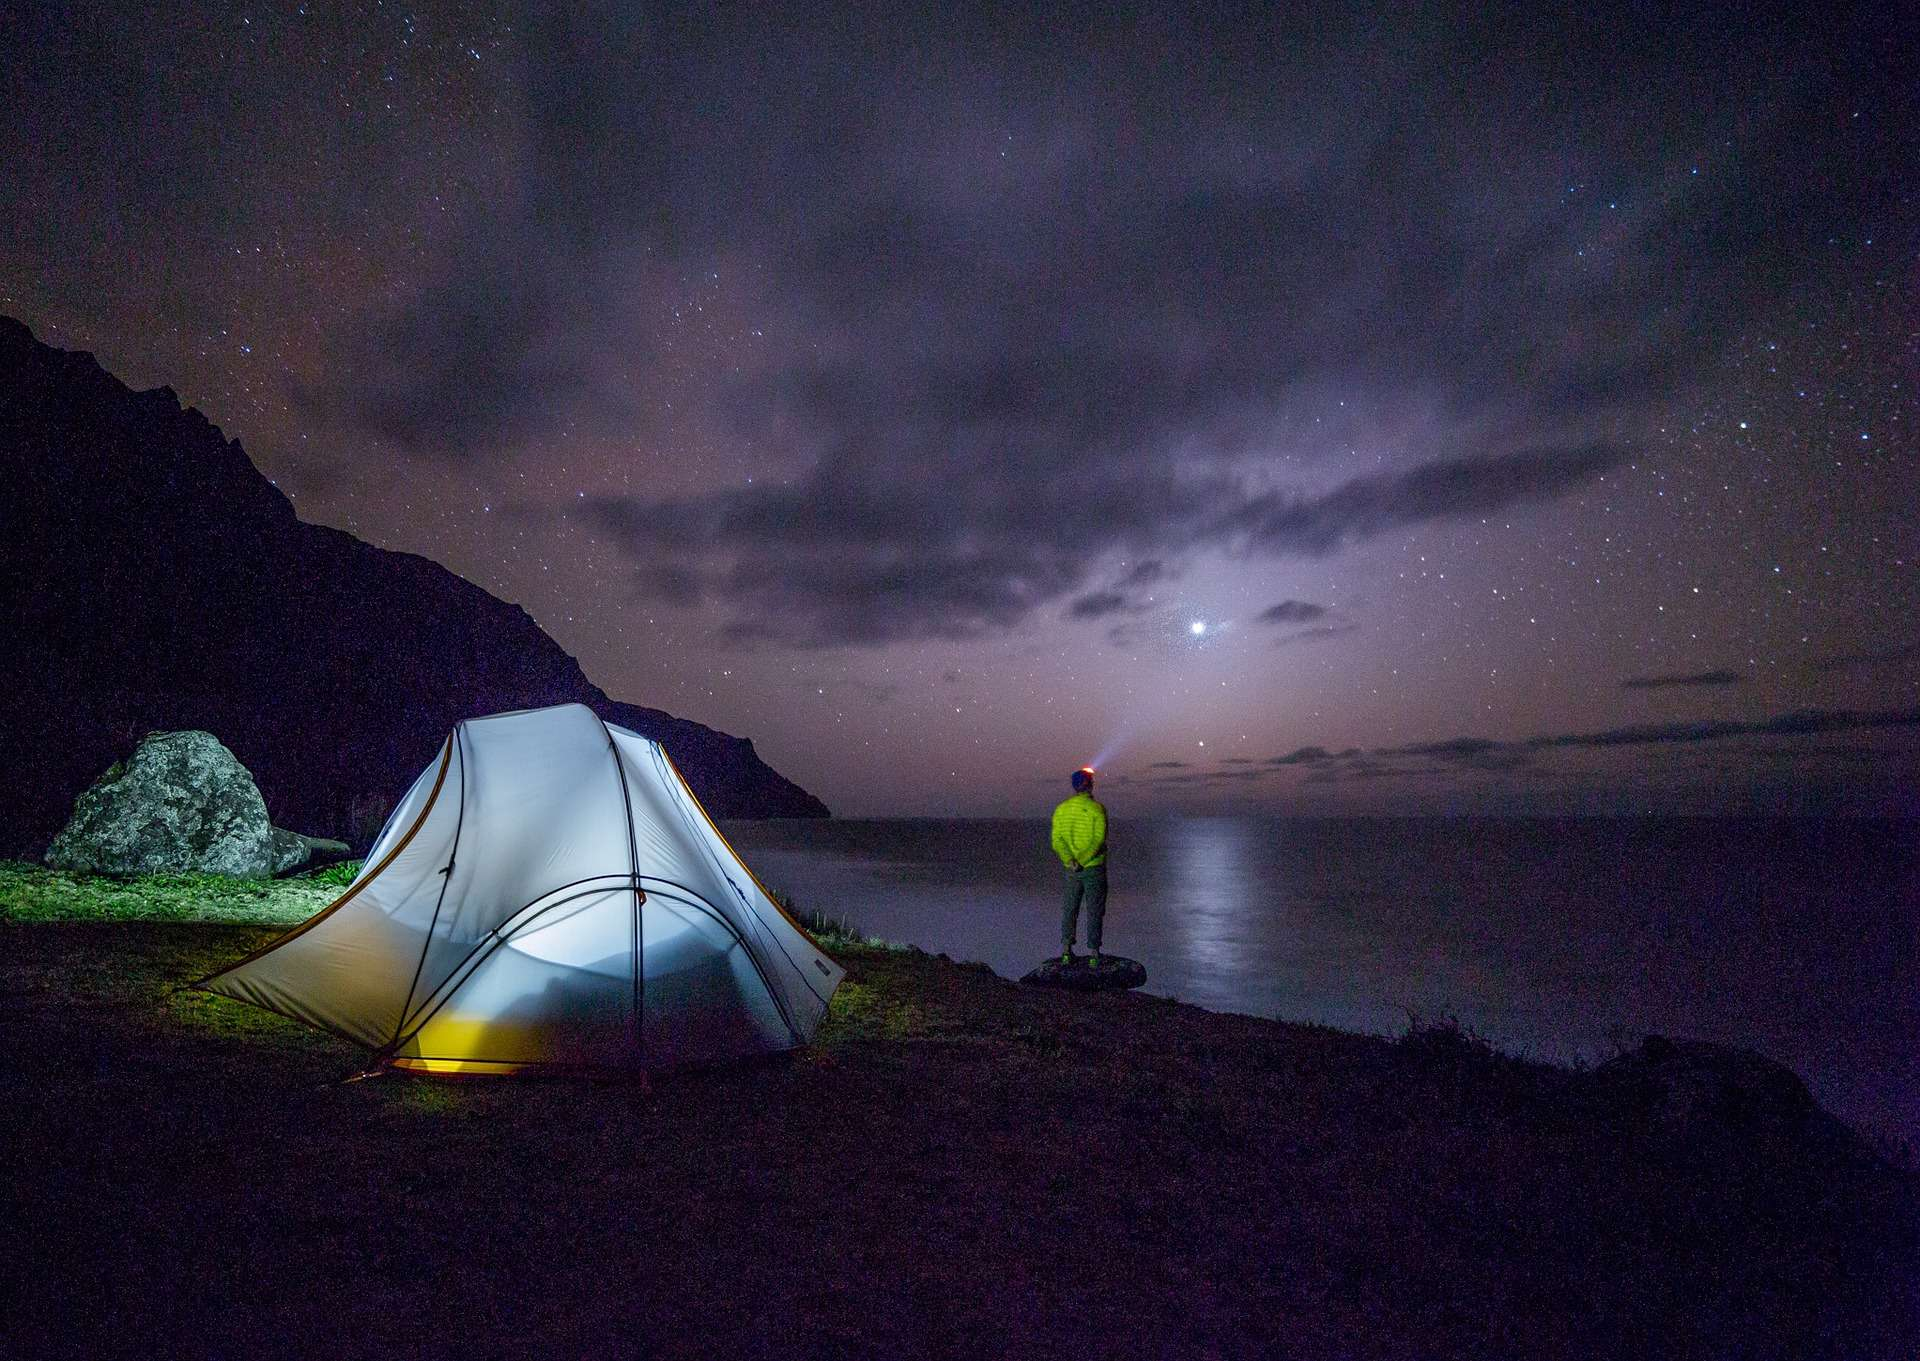 Guide To Get Proper Exposure For Night Photography